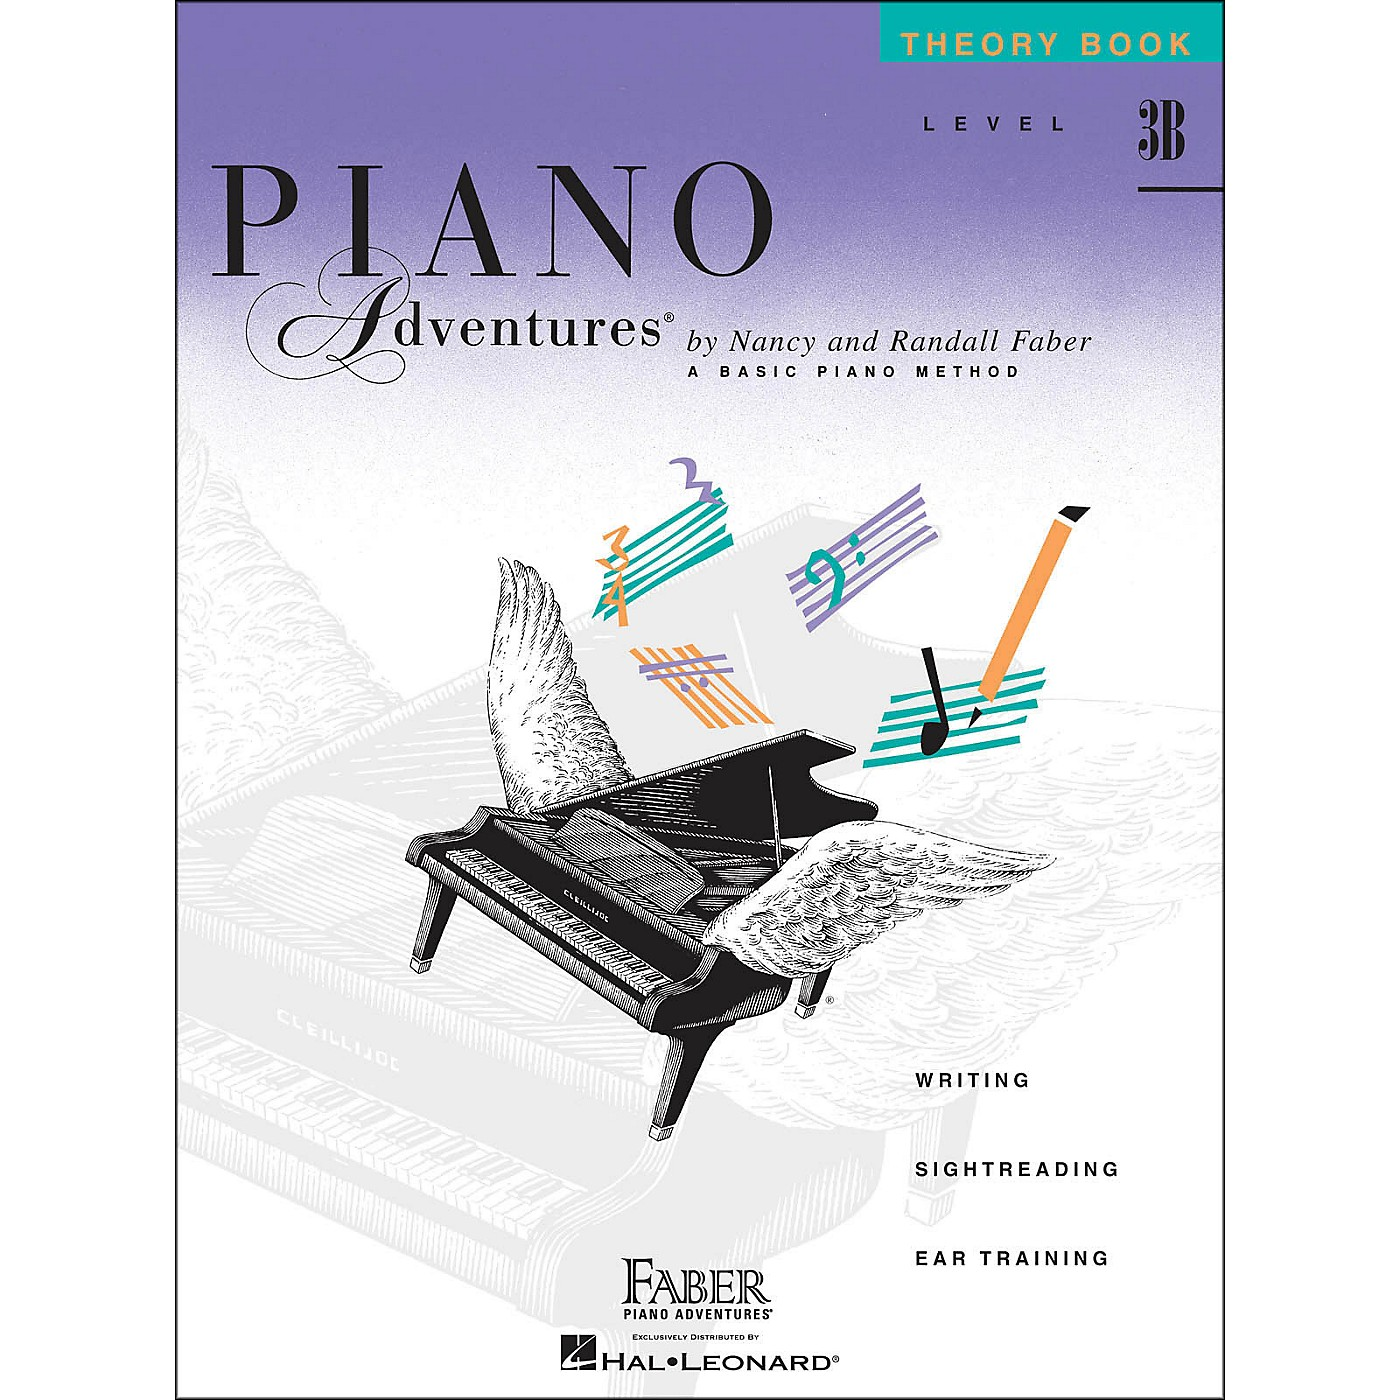 Faber Piano Adventures Piano Adventures Theory Book Level 3B thumbnail